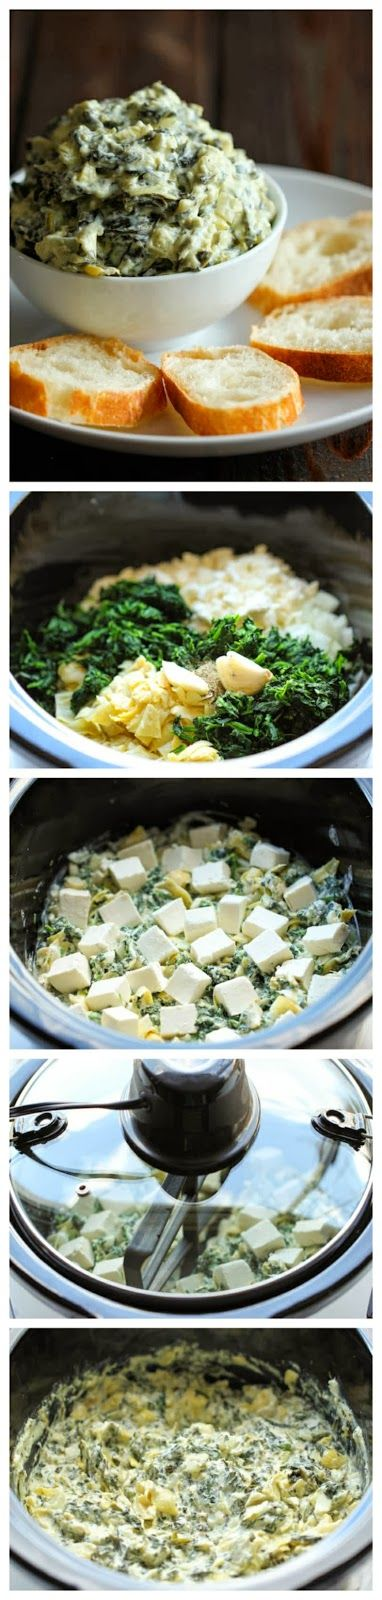 Slow Cooker Spinach & Artichoke Dip 28 oz canned artichoke hearts:drained, chopped 10 oz frozen spinach:thawed, squeezed dry 8 oz sour cream 2 cloves garlic  3/4 c grated Parmesan cheese 3/4 c milk 1/2 c crumbled feta cheese 1/3 c mayo 1 T red wine vinegar 1/4 Tsp black pepper 8 oz cream cheese cubed Combine all ingredients except cream cheese. Top with cream cheese.Cover and cook on low for 2 hrs.Uncover and stir until cream cheese is well combined. Cover and cook on high heat for 15 min.